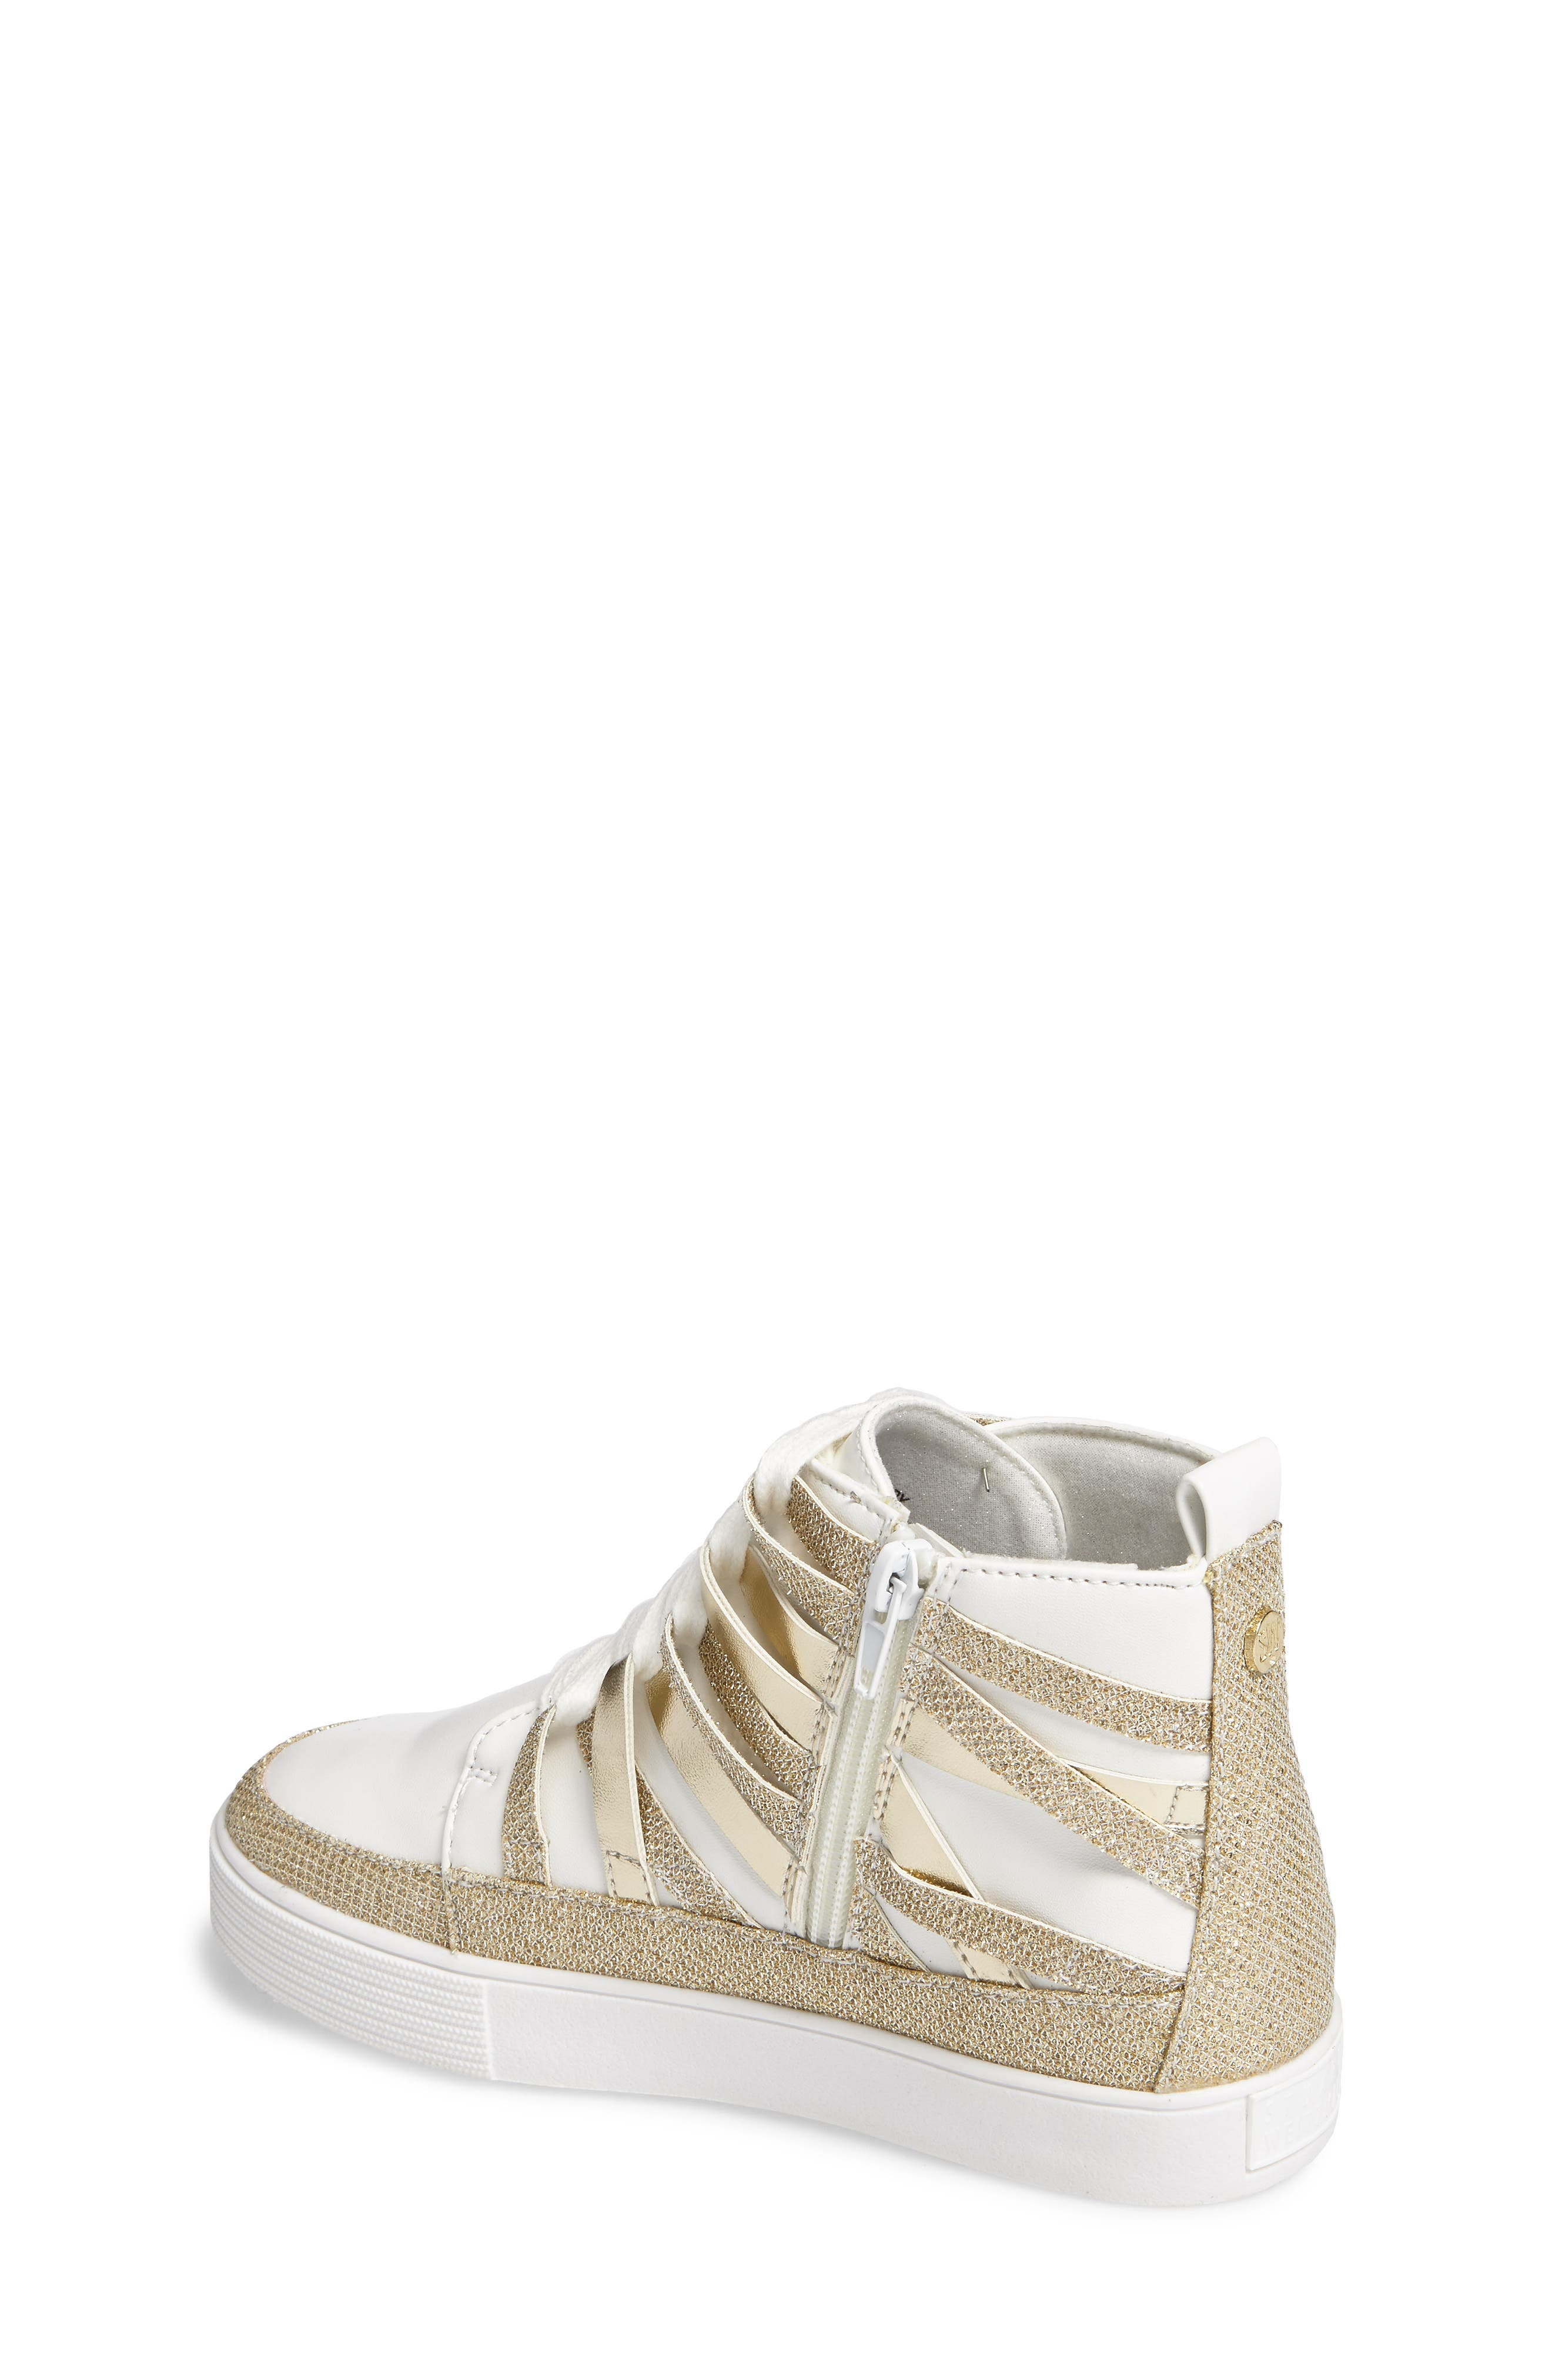 Vance Strappy High Top Sneaker,                             Alternate thumbnail 2, color,                             711